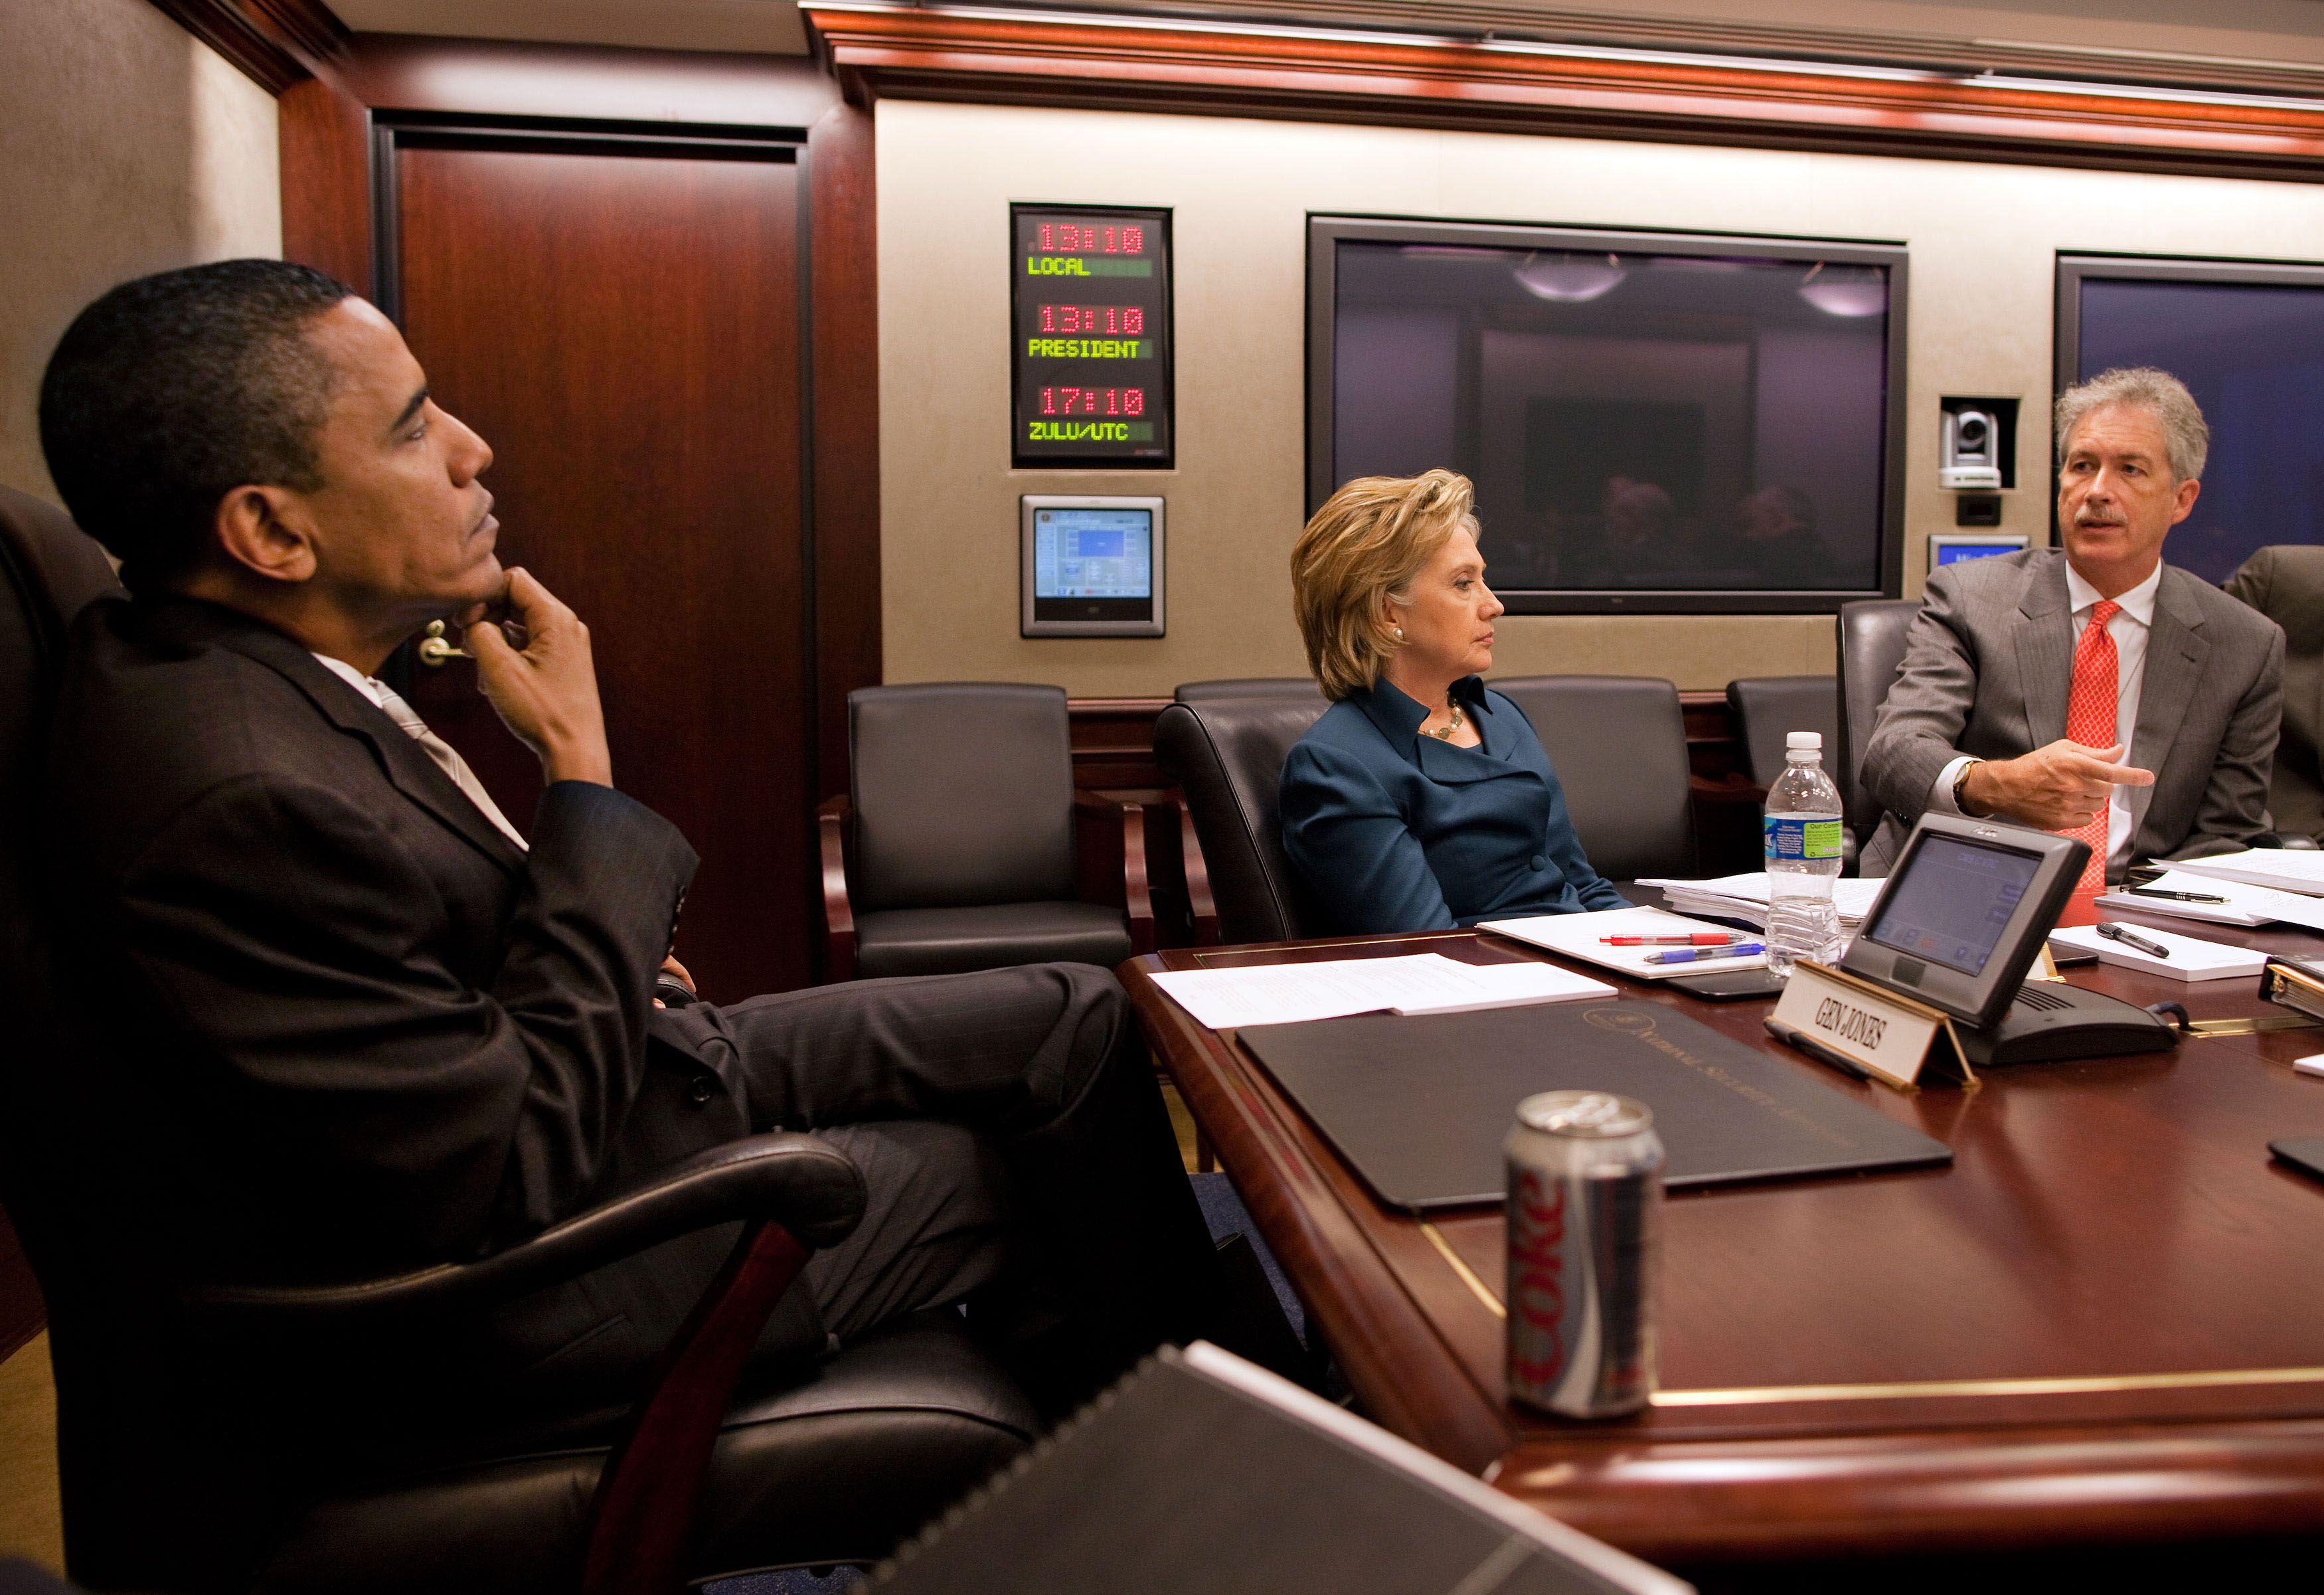 File:Barack Obama, Hillary Clinton and Bill Burns in the White House ...